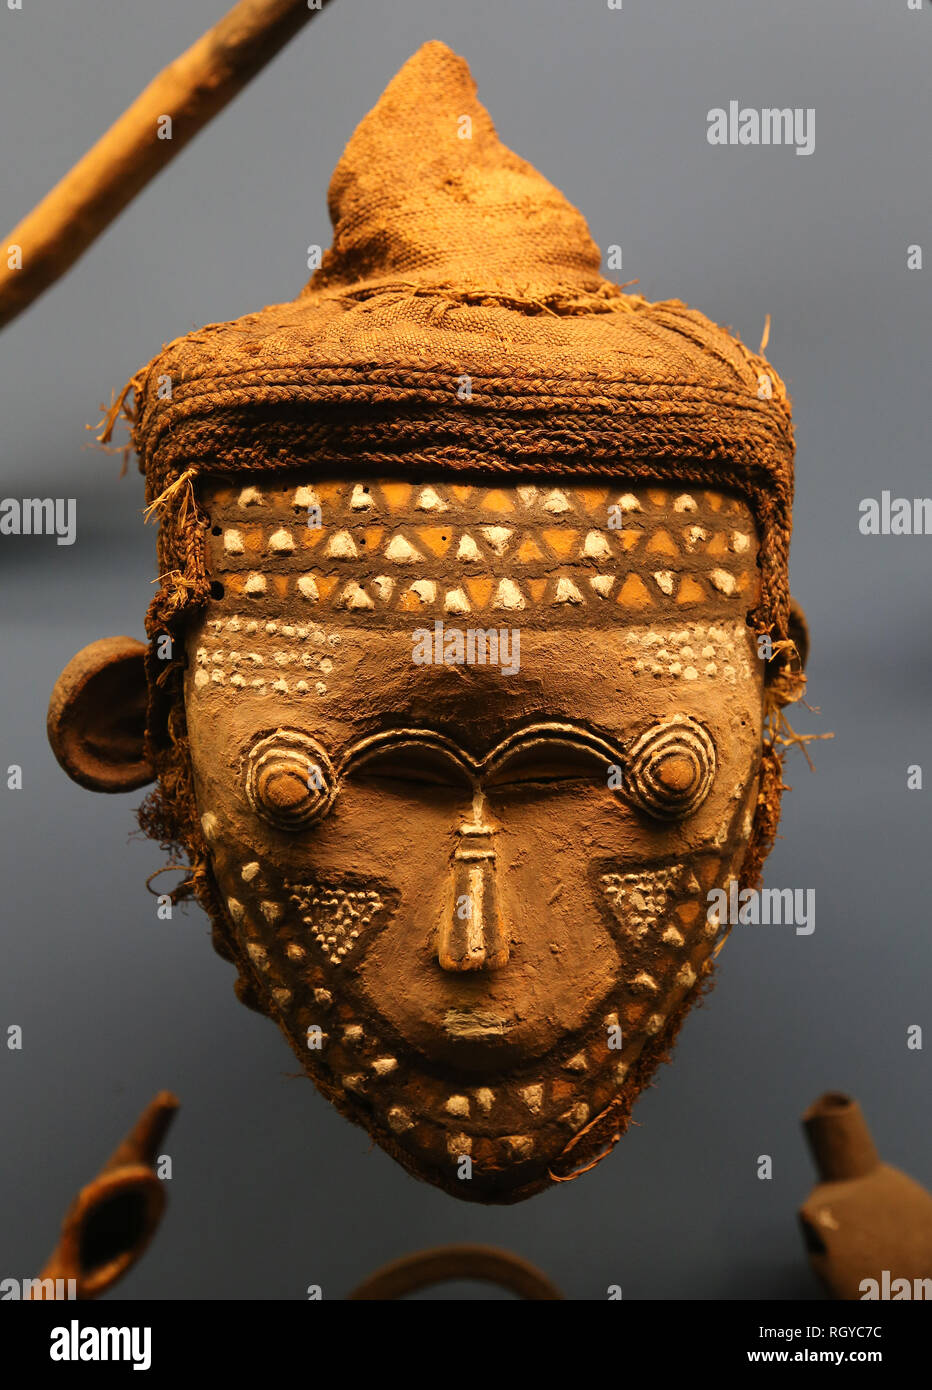 Masck, Lele. African object. Congo. American Museum of Natural History. NY. United States. - Stock Image